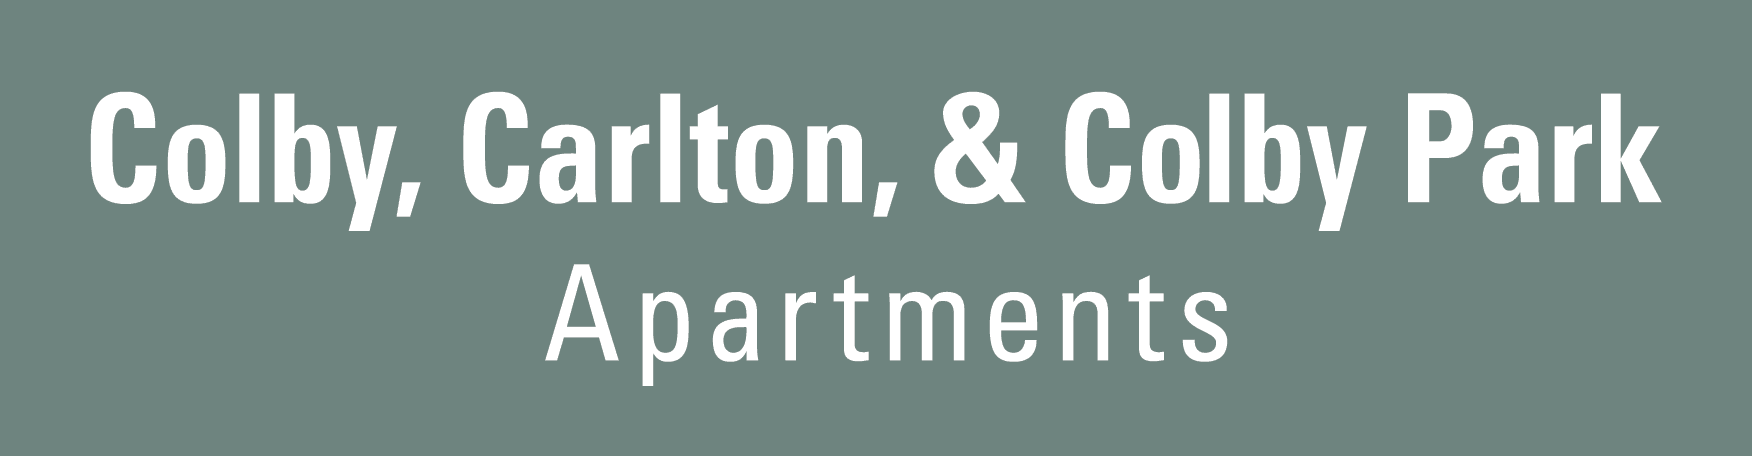 Colby, Carlton, and Colby Park Apartments